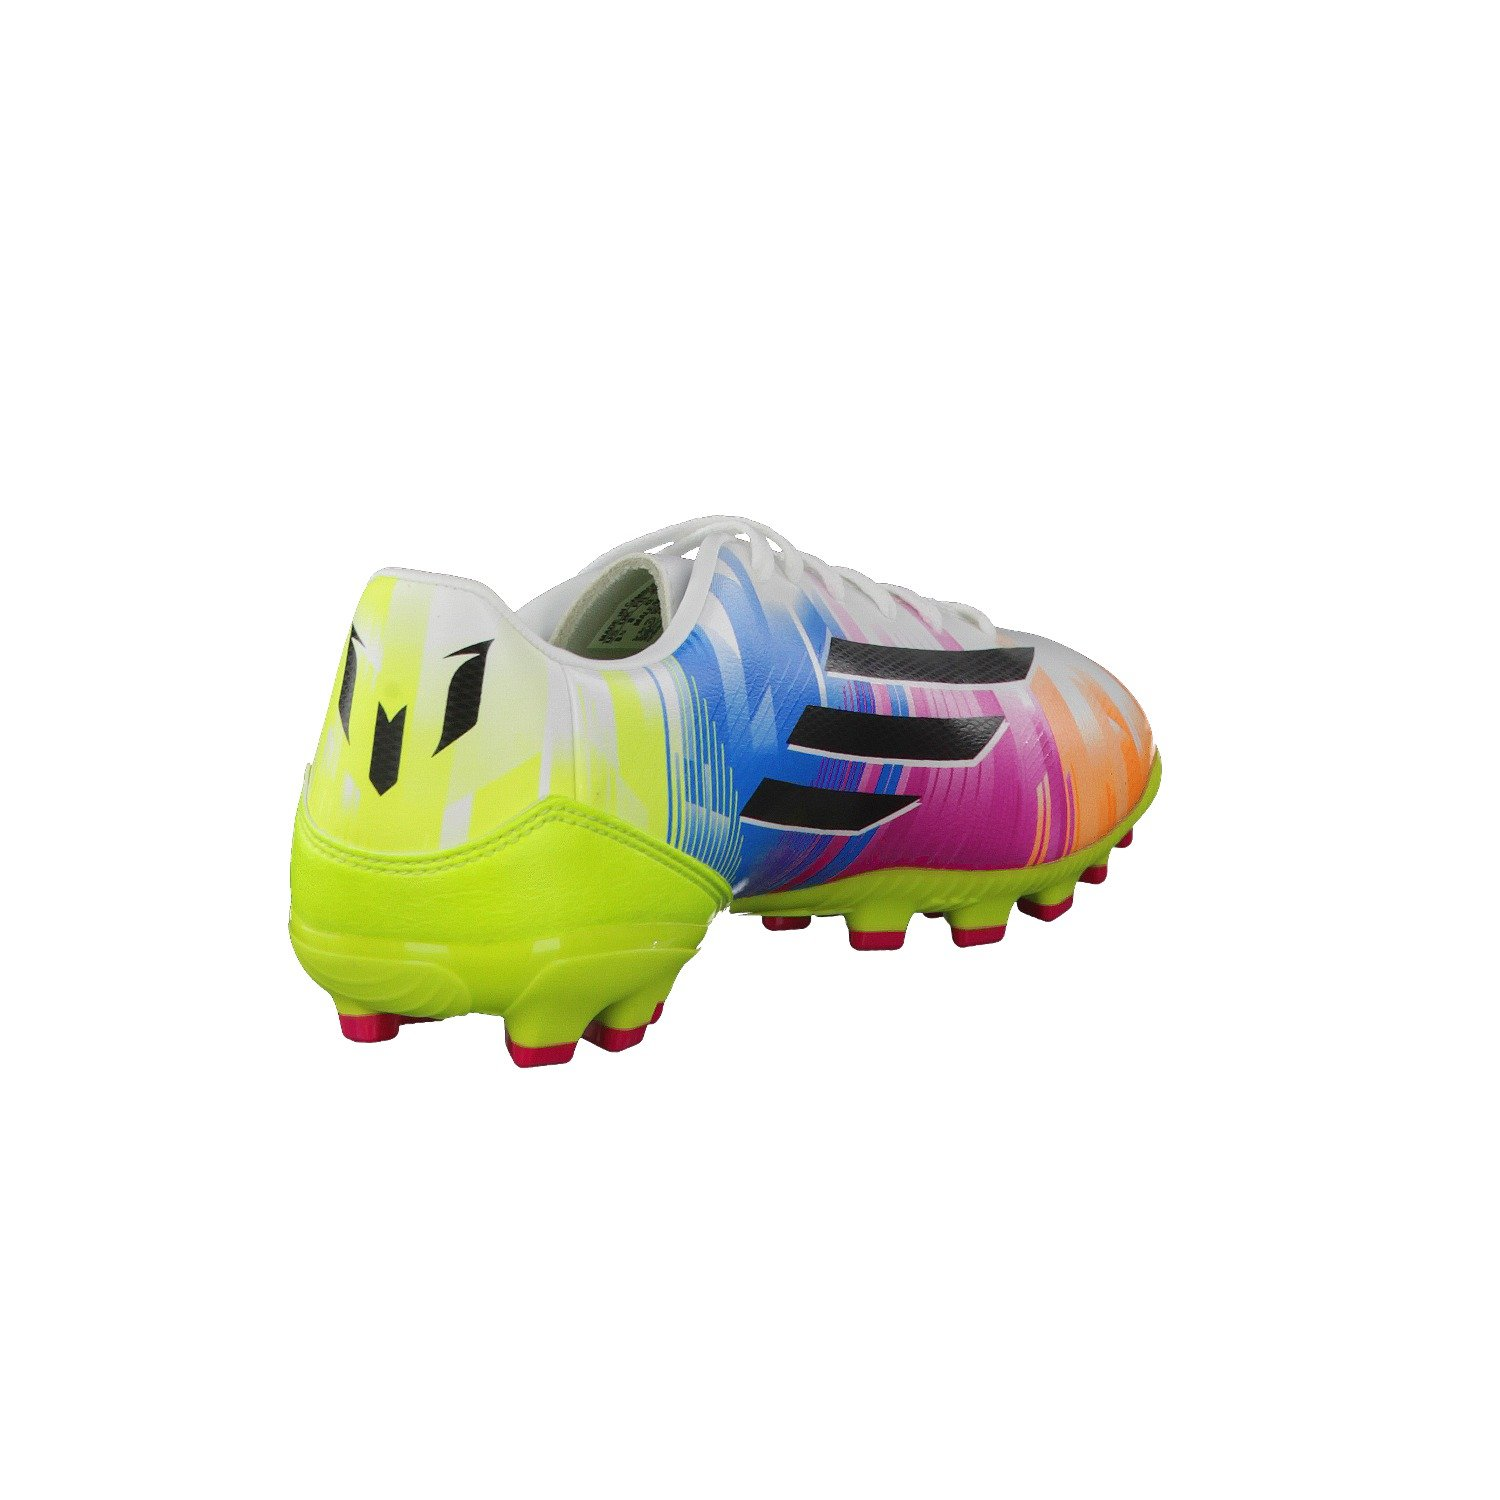 new style 1e852 28b8e Adidas Fussballschuhe F10 TRX AG Messi White Running WhiteBlackSolar Slime  Size40 Amazon.co.uk Sports  Outdoors